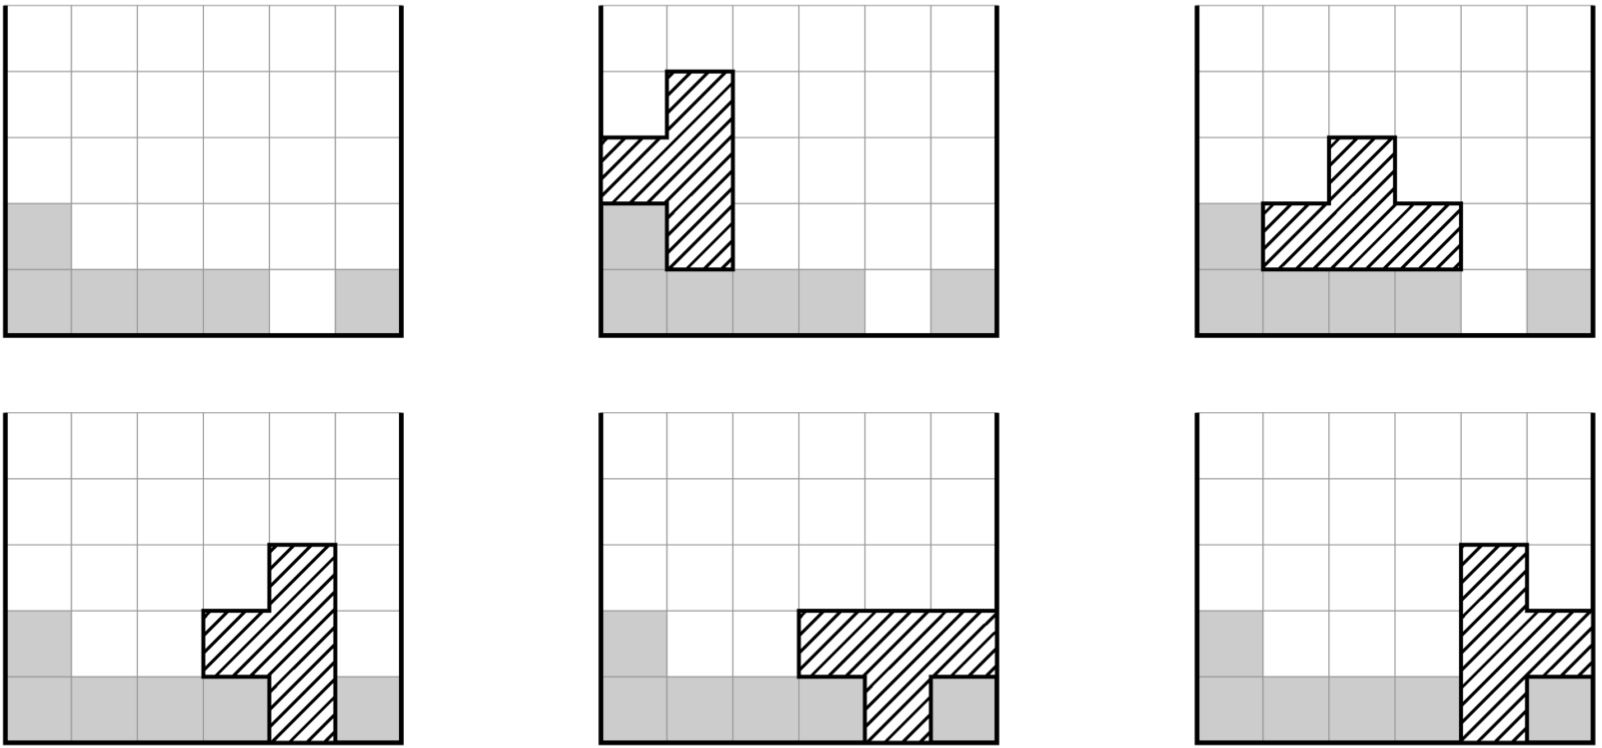 \includegraphics[width=0.95\textwidth ]{tetris2}